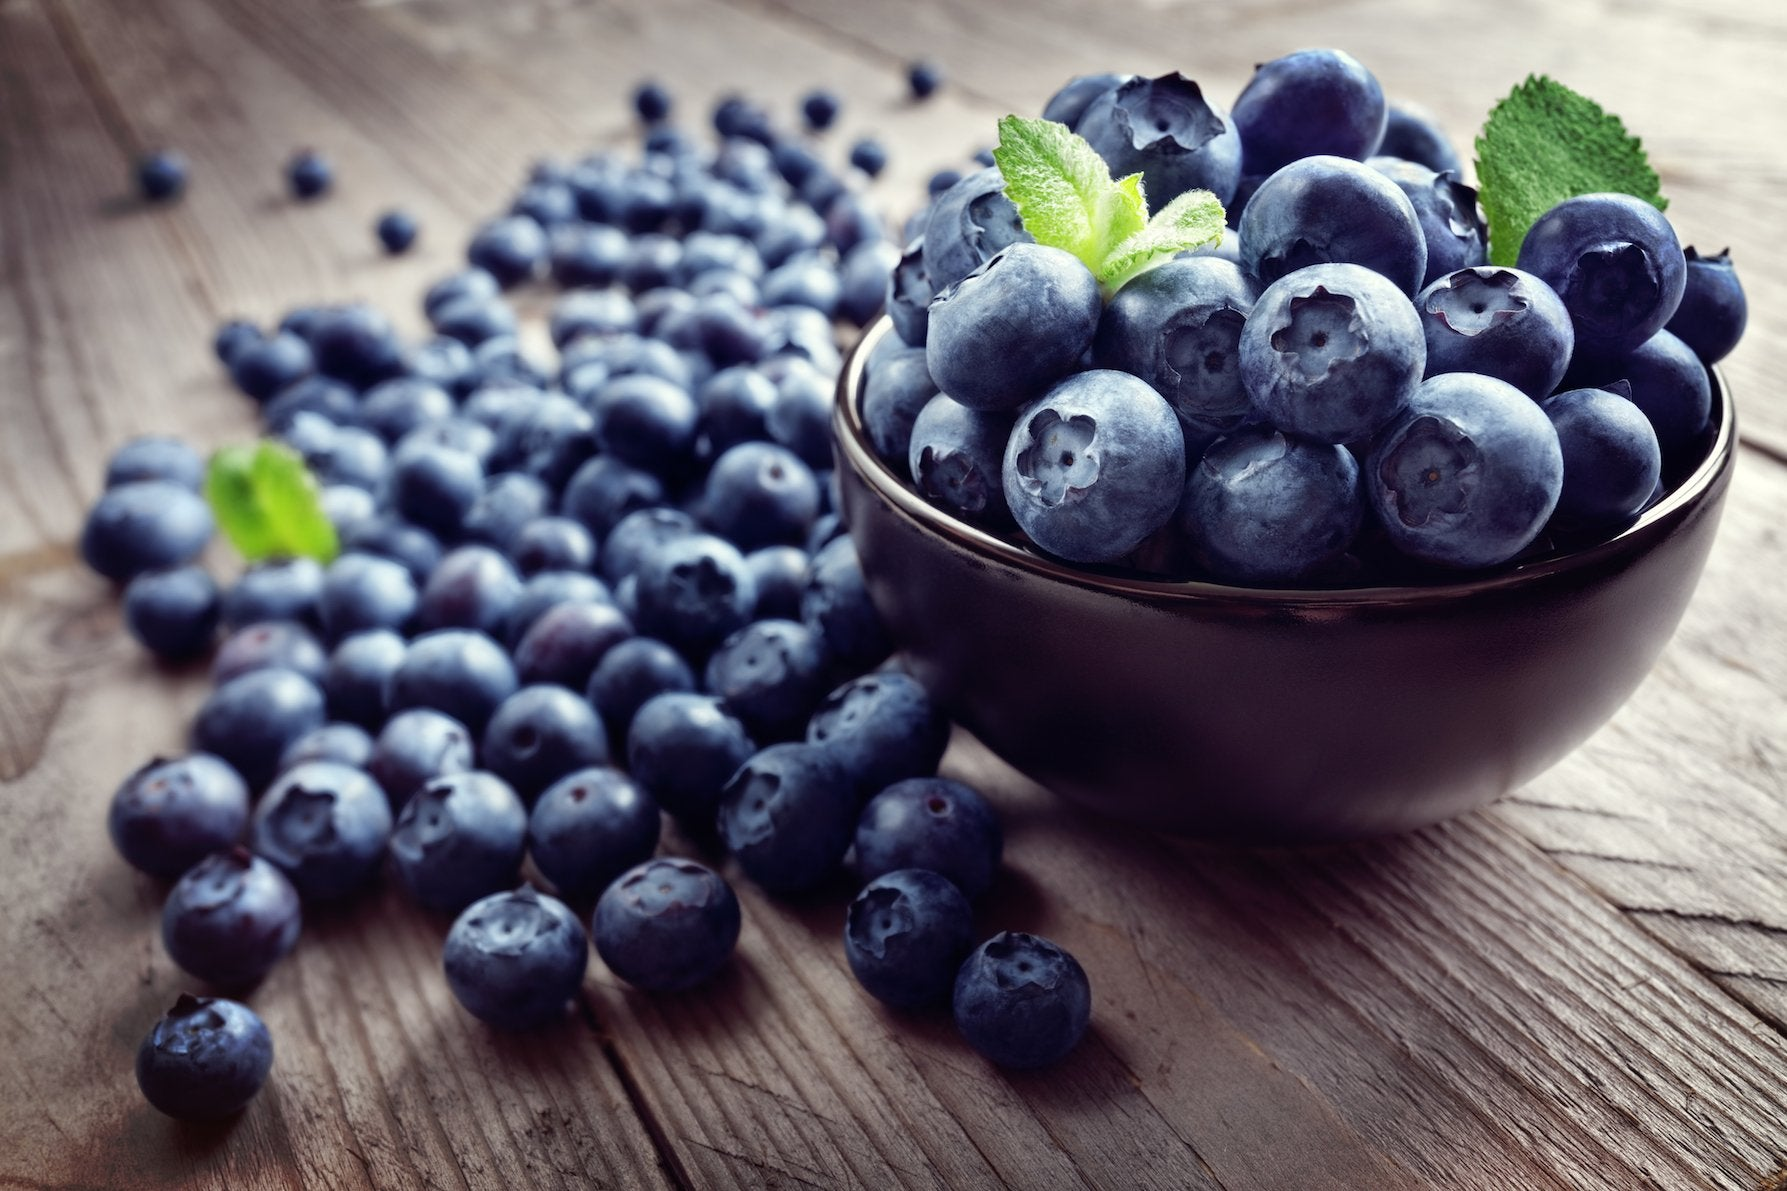 Superfoods to Fuel Your Brain